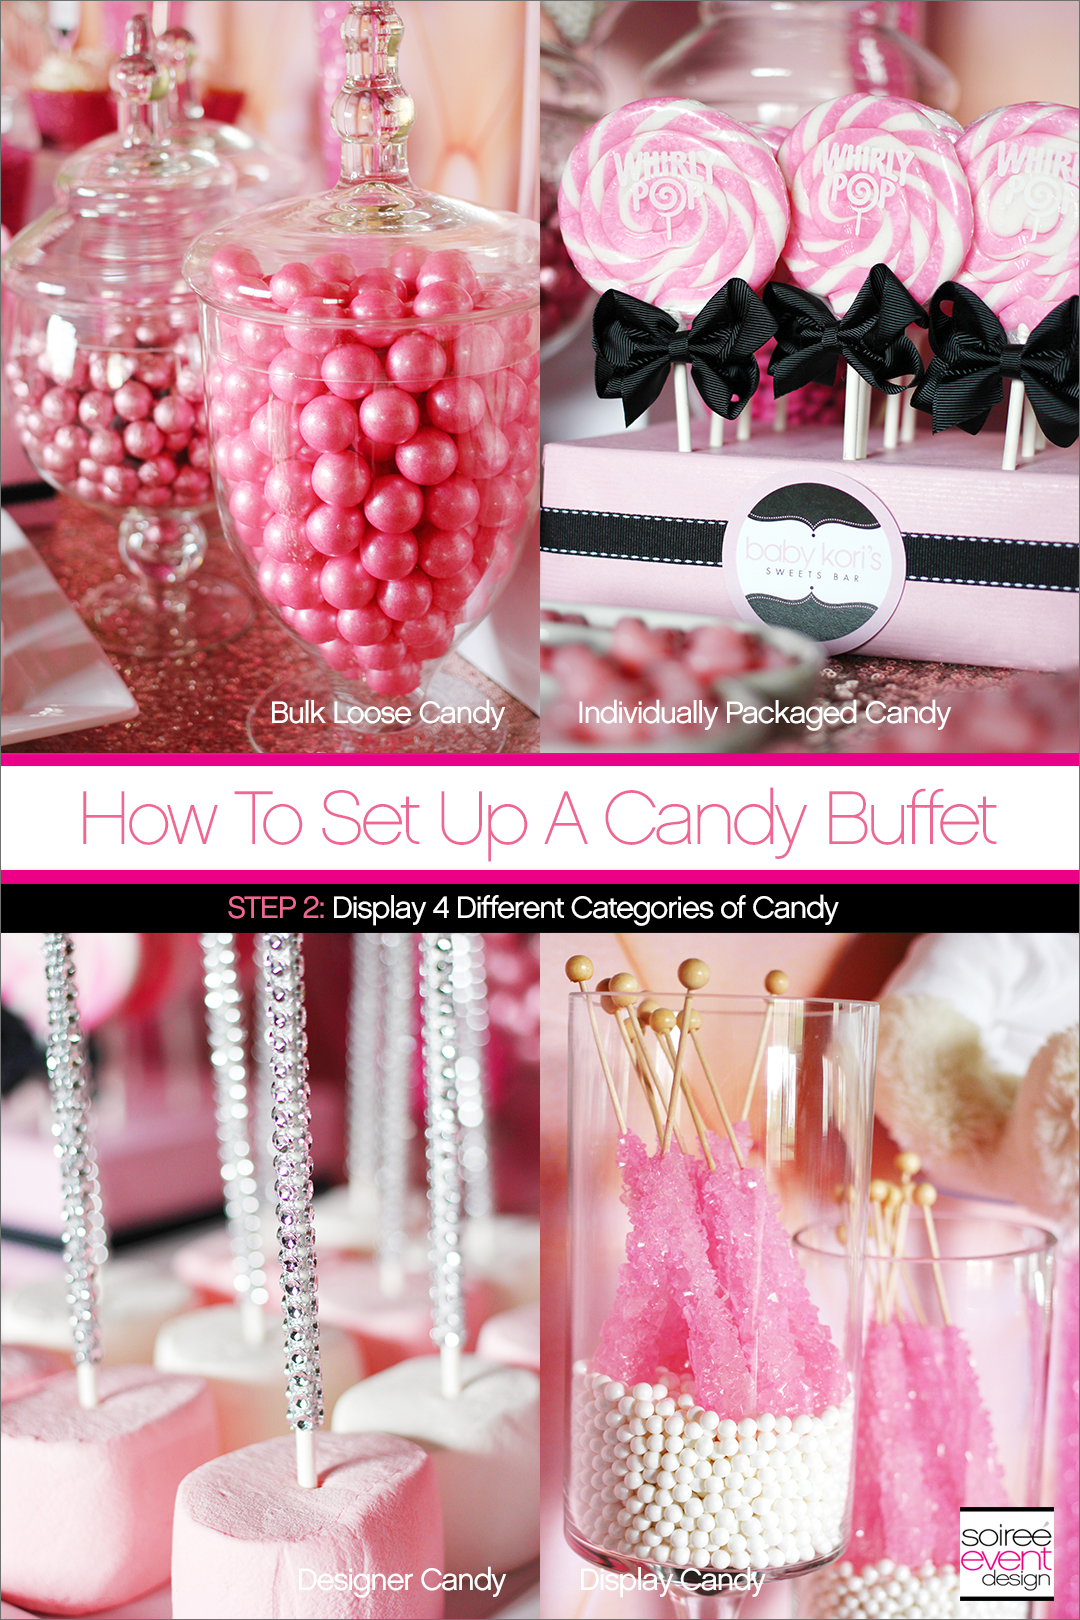 How To Set Up A Candy Buffet + How Much Does A Candy Buffet Cost ...